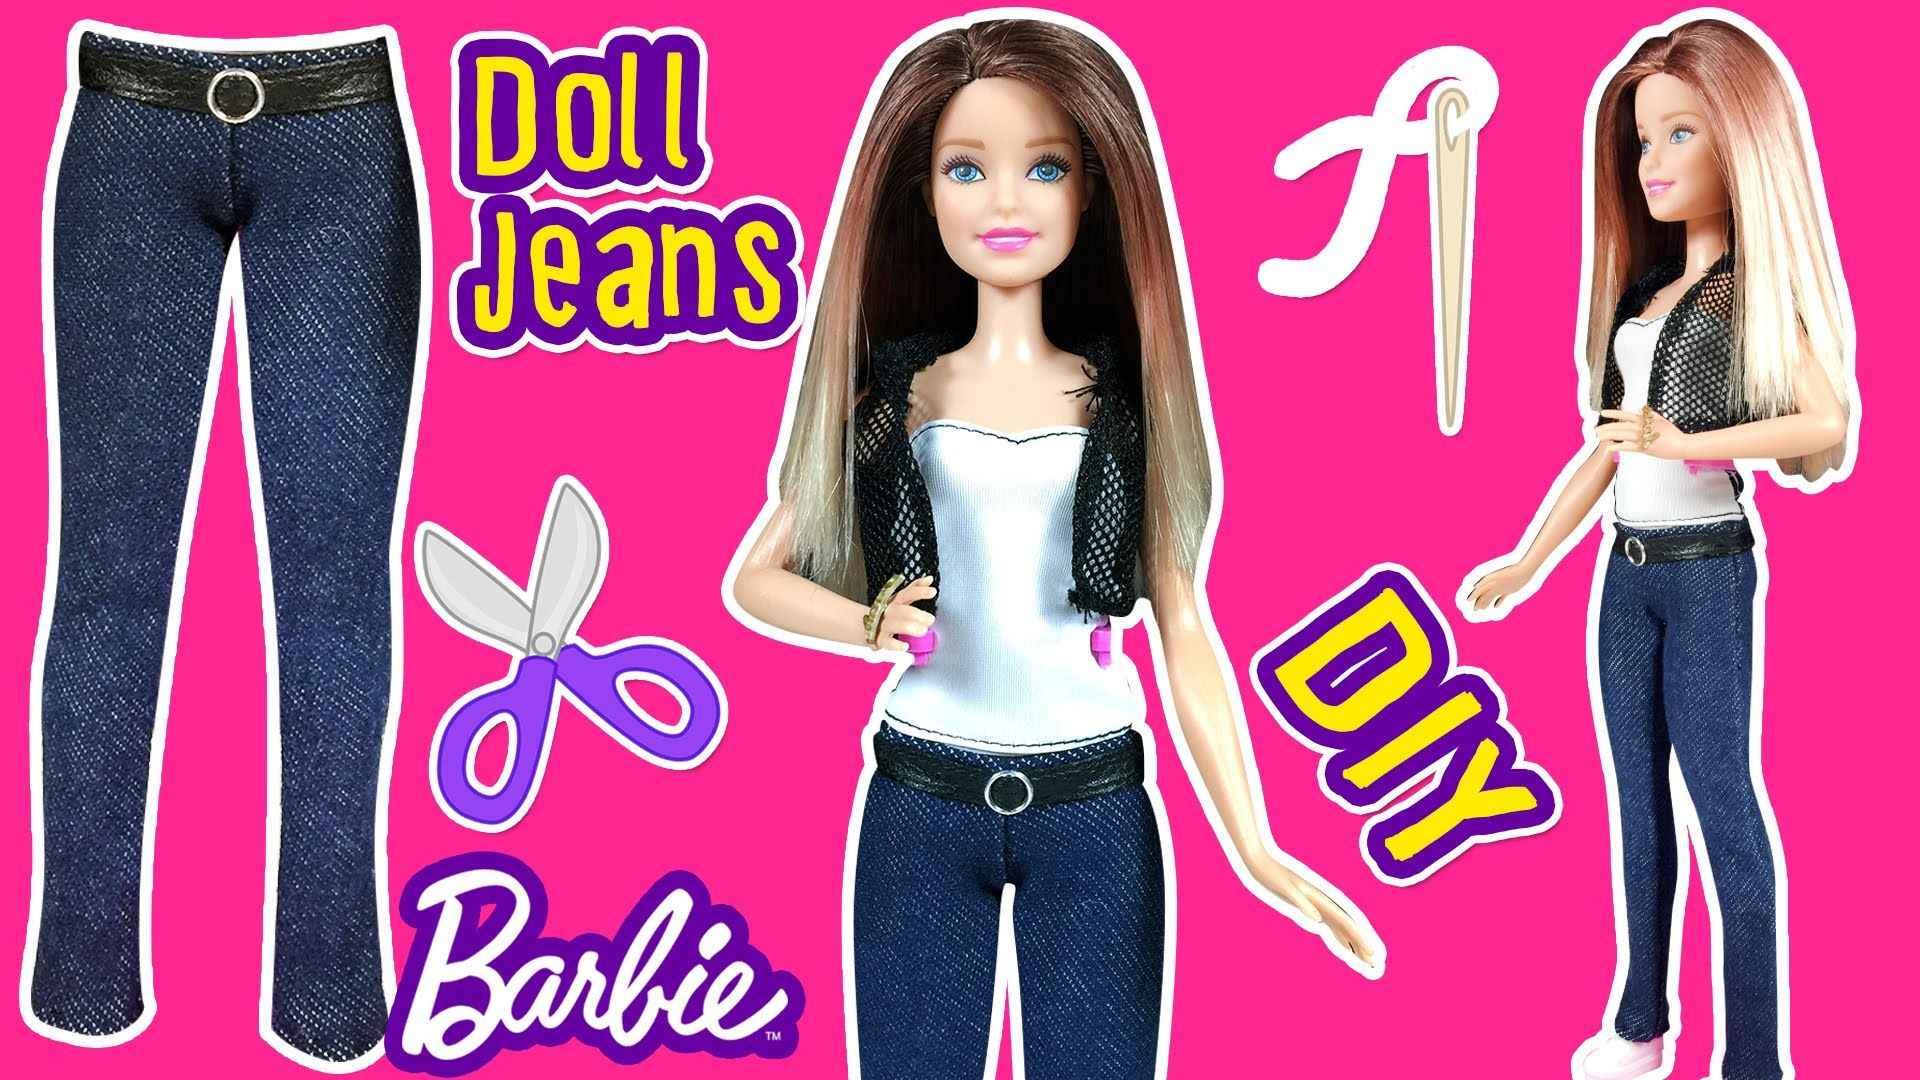 How to Make Barbie Doll Jeans - DIY Barbie Clothes Tutorial - Making ...